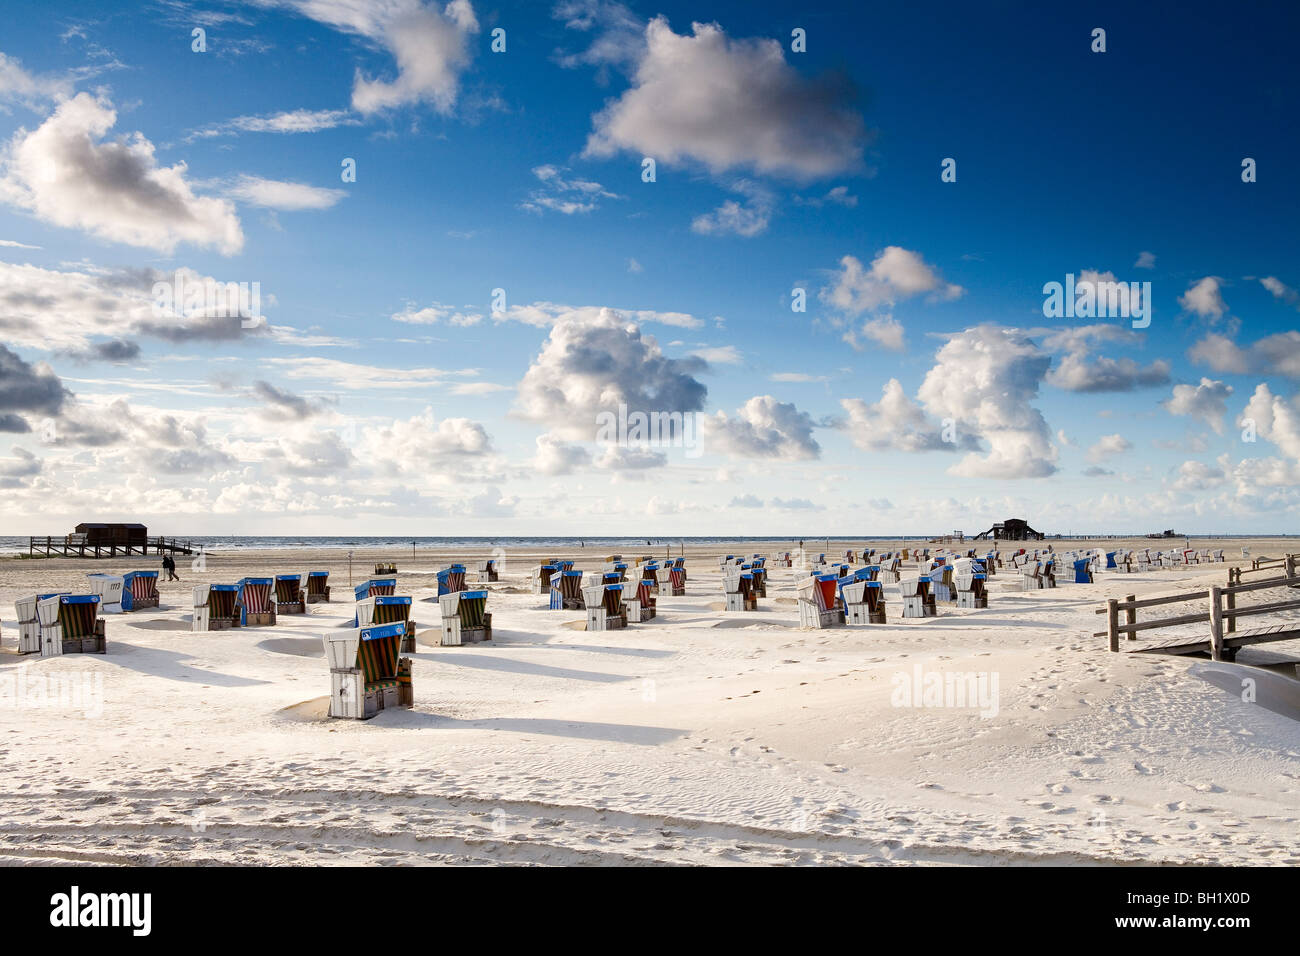 beach chairs on the beach st peter ording eiderstedt peninsula stock photo 27701869 alamy. Black Bedroom Furniture Sets. Home Design Ideas